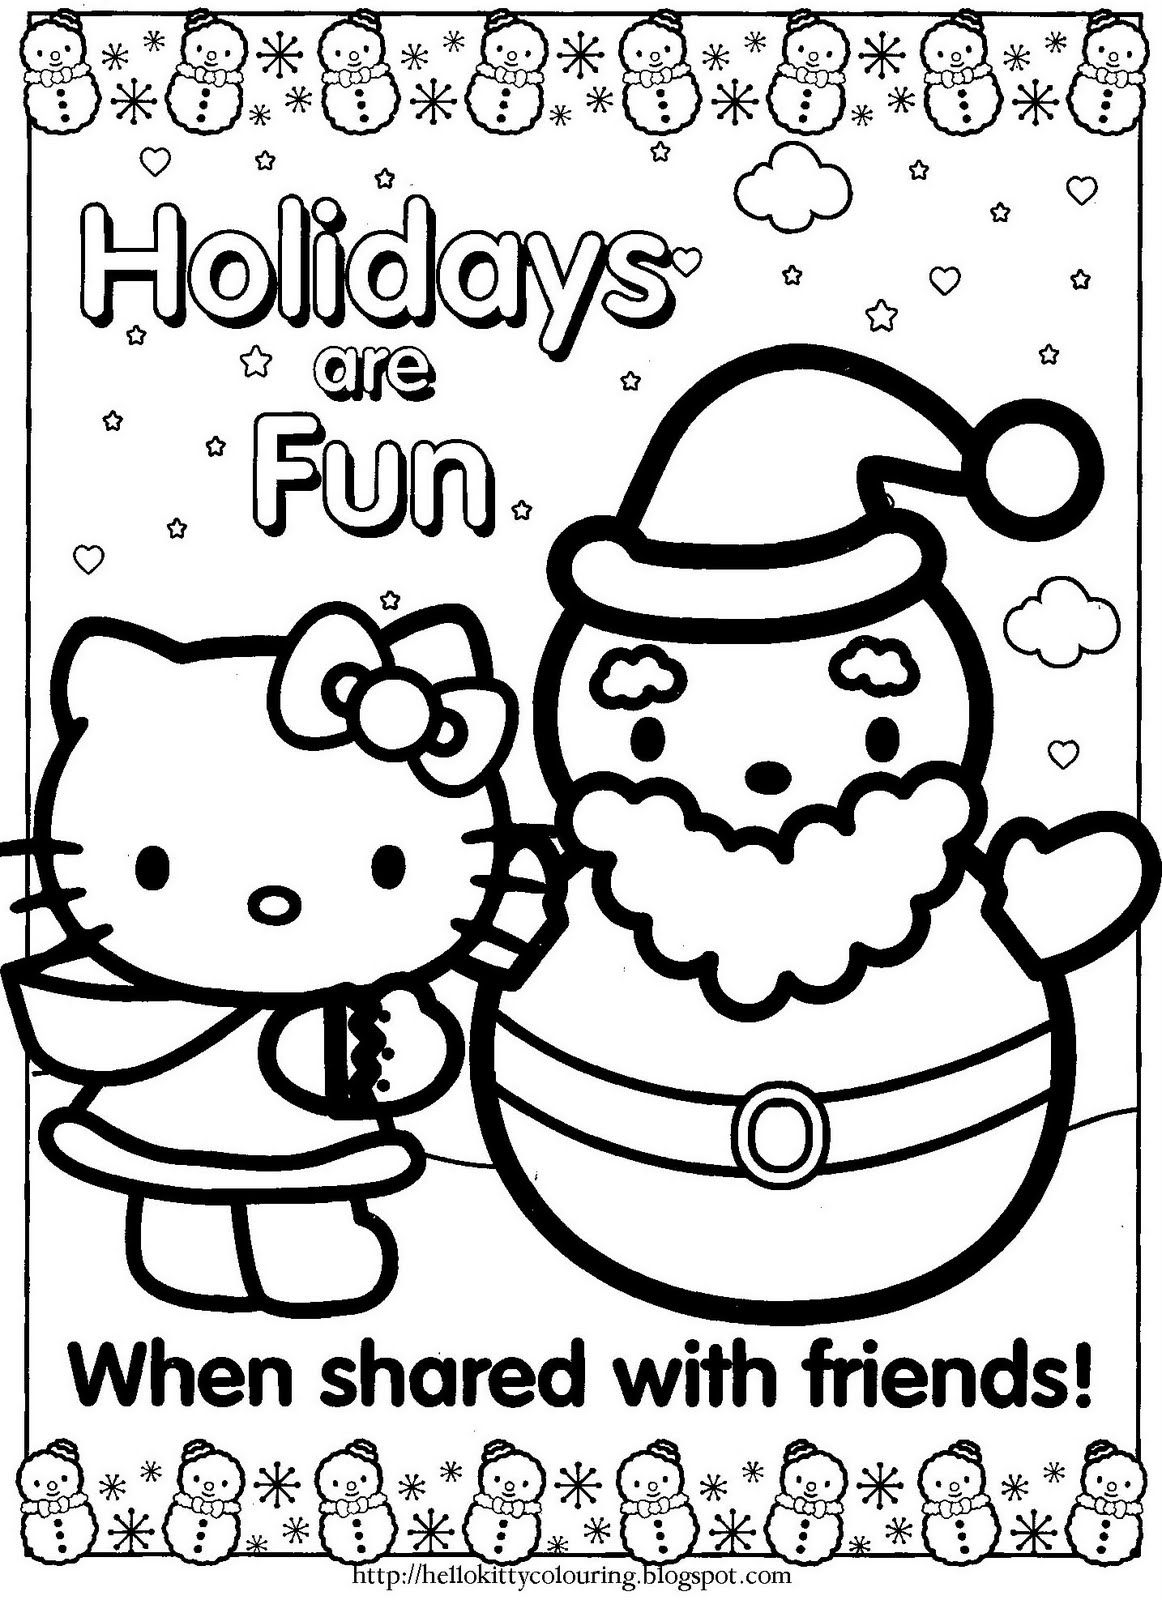 Hundreds of free printable xmas coloring pages and xmas activity sheets for children of all ages happy xmas